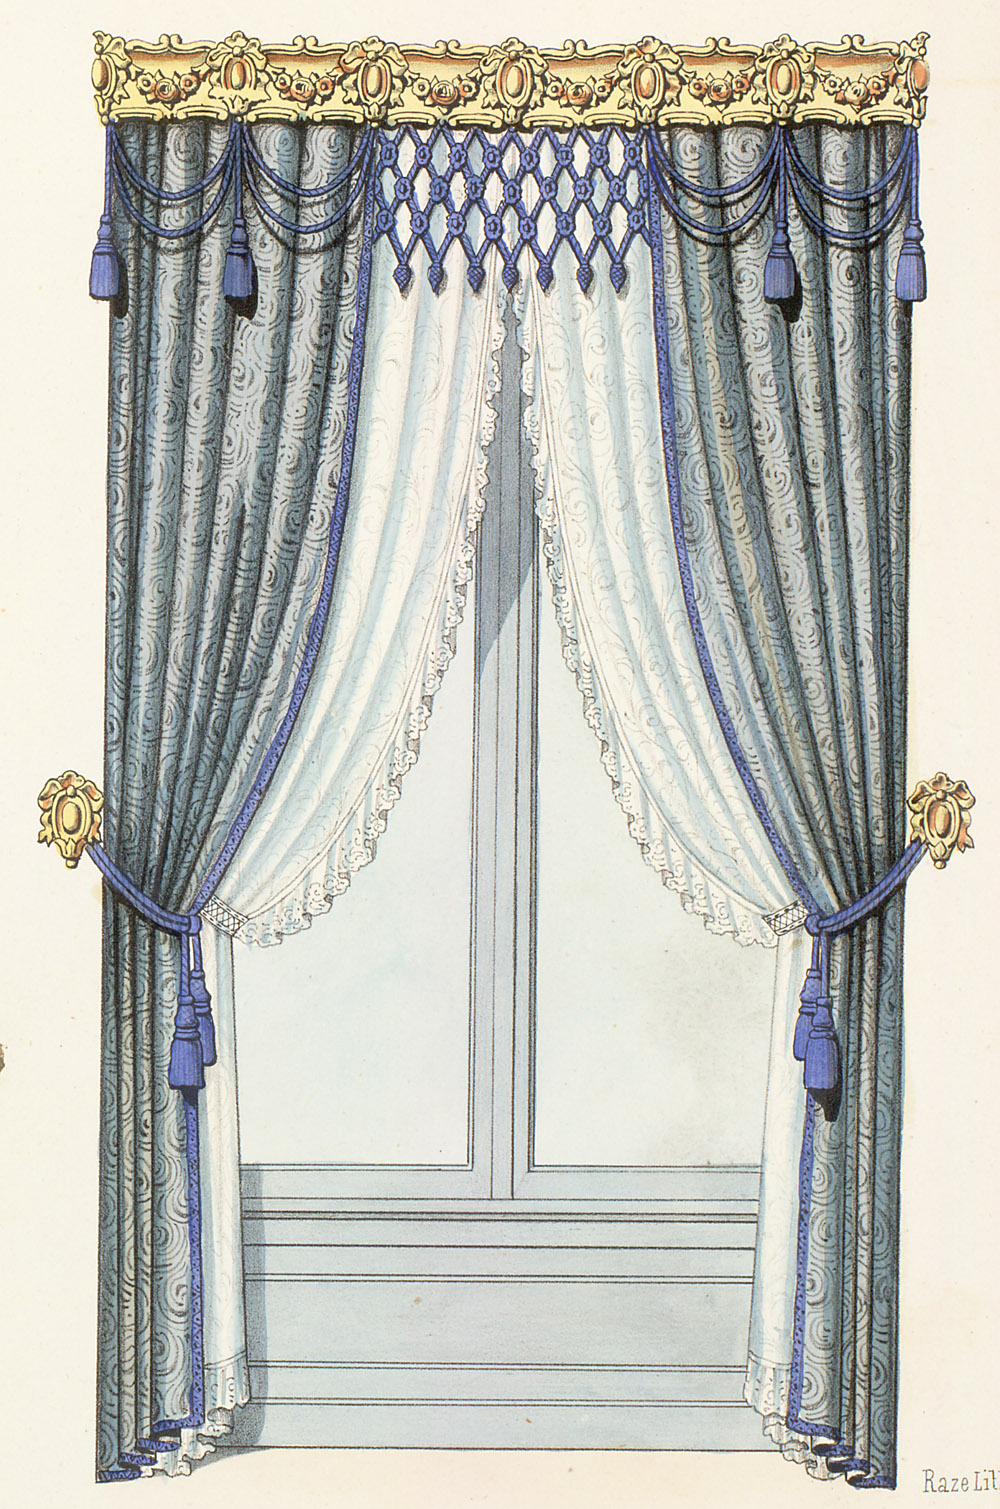 Window Treatment,  Image number:SIL12-2-383c